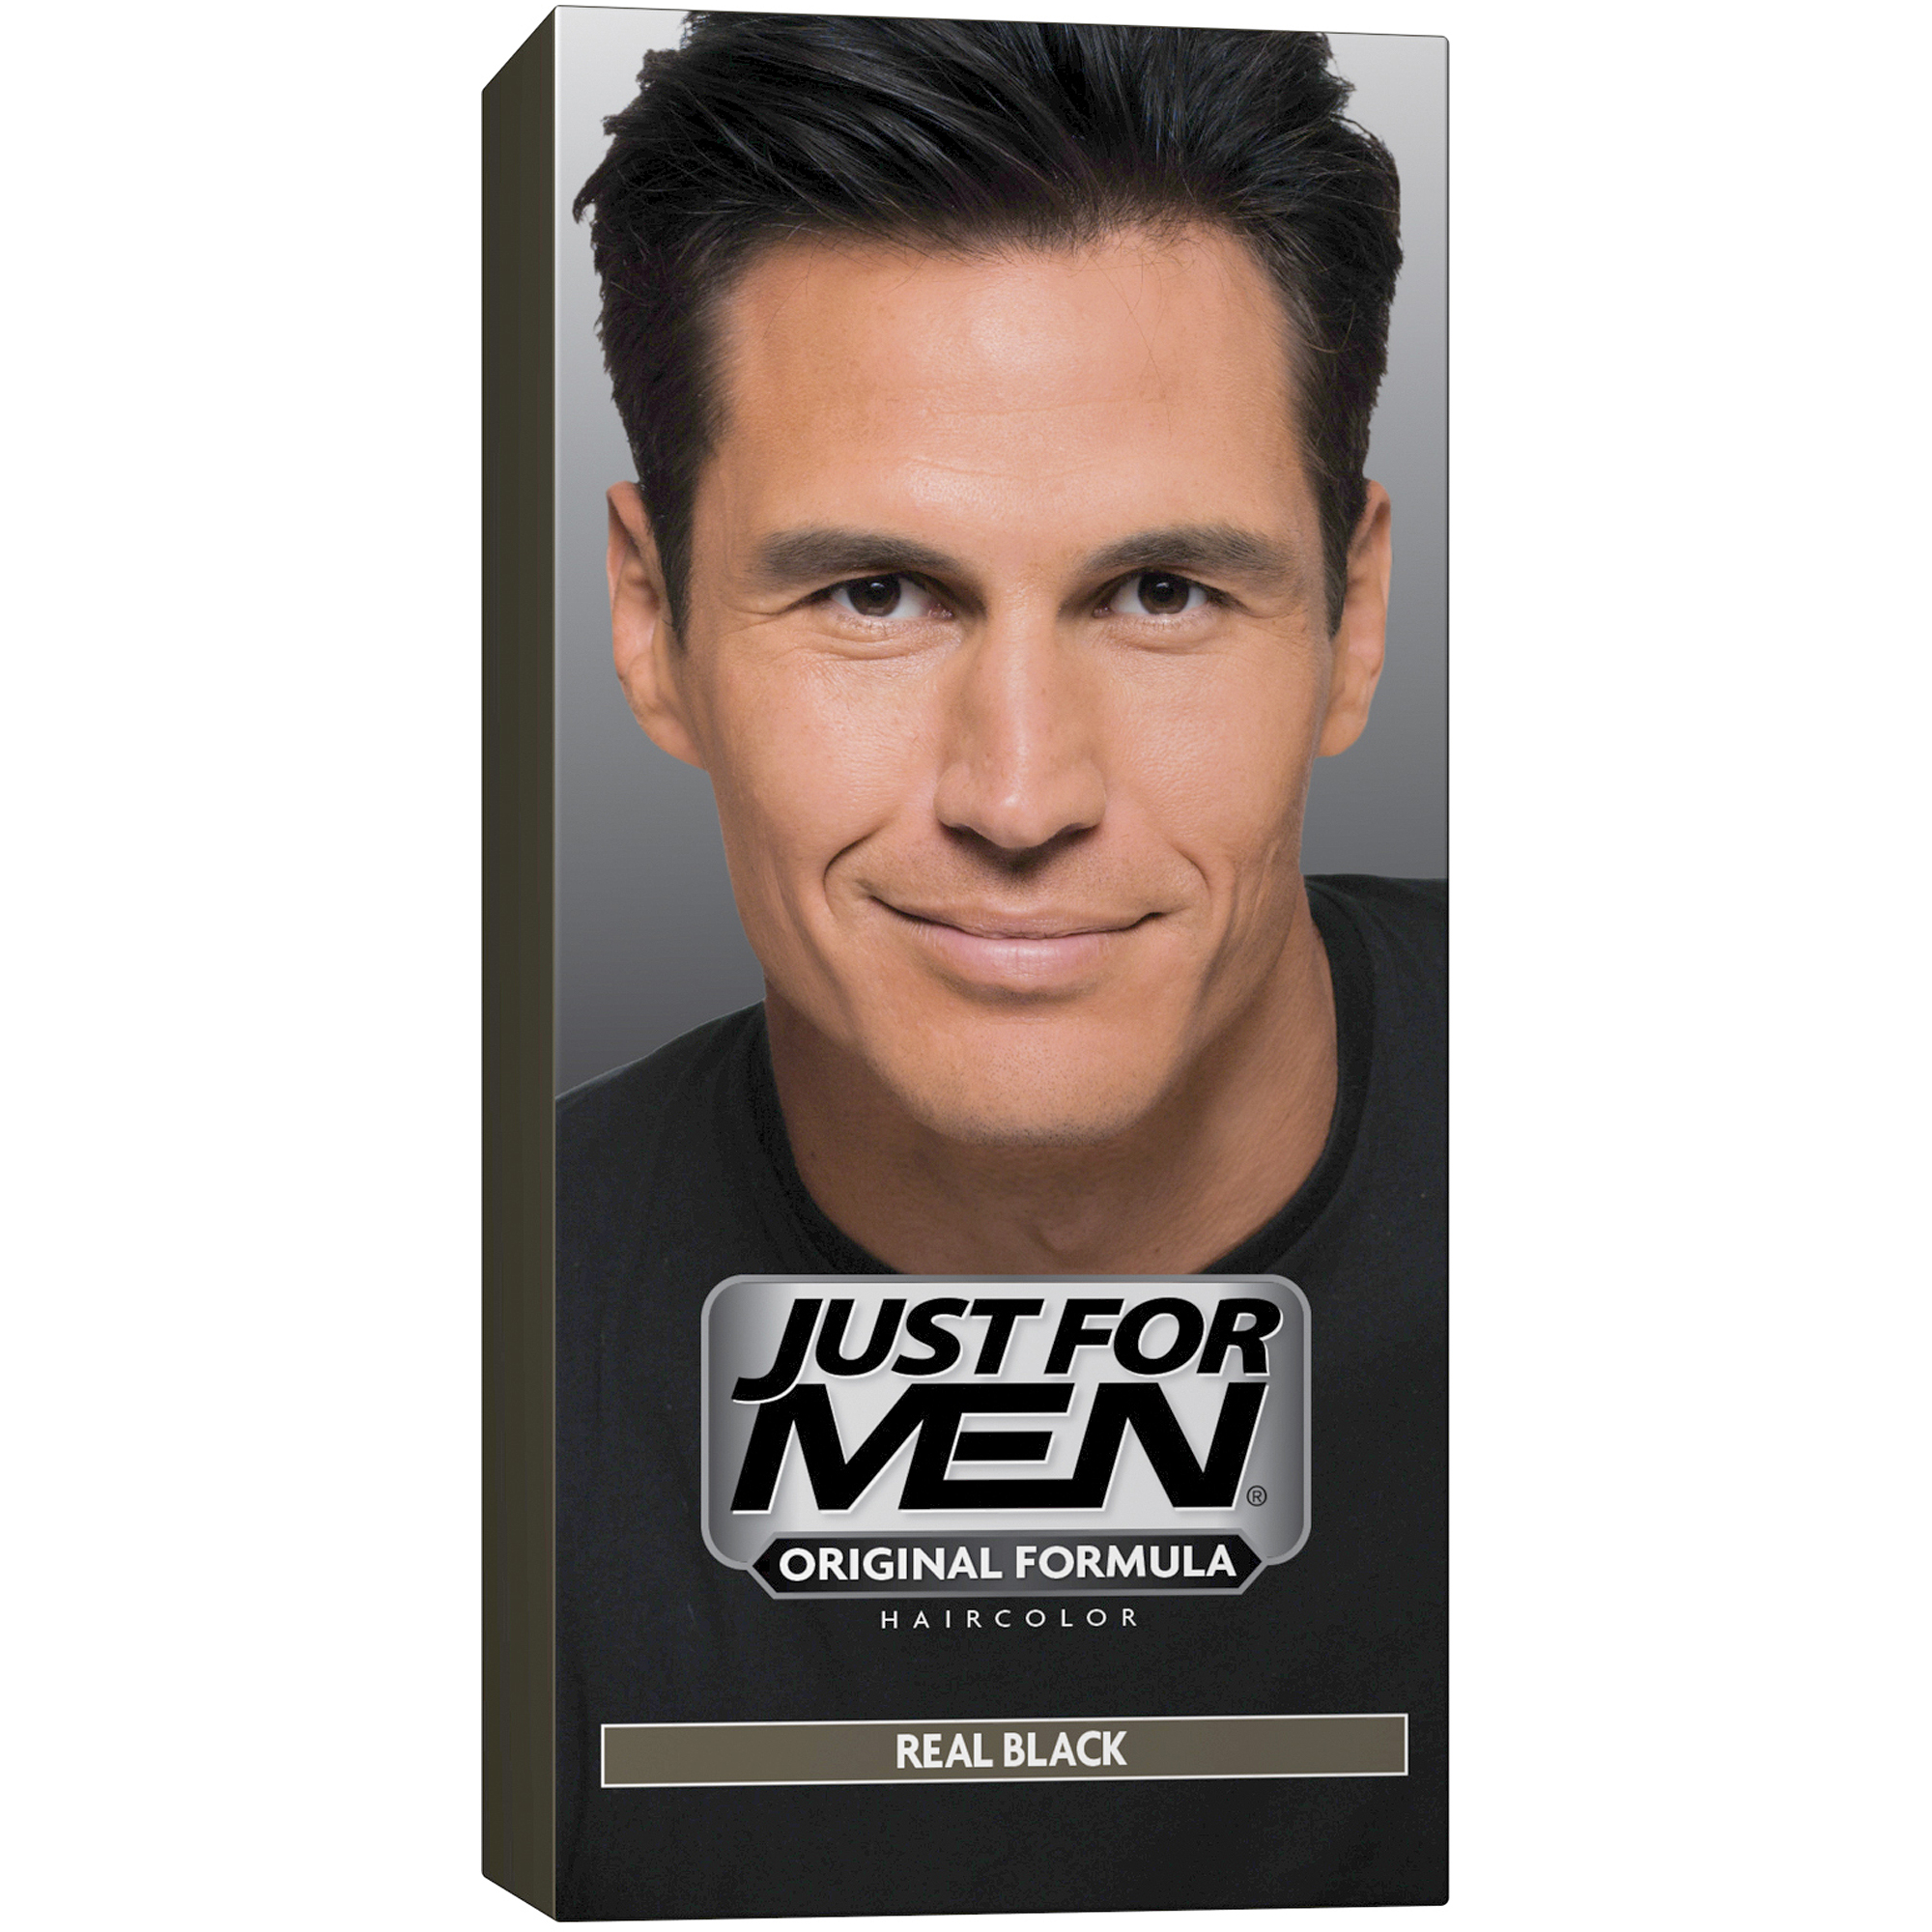 Just For Men Shampoo-In Hair Color Real Black, 1 Application, Pack ...